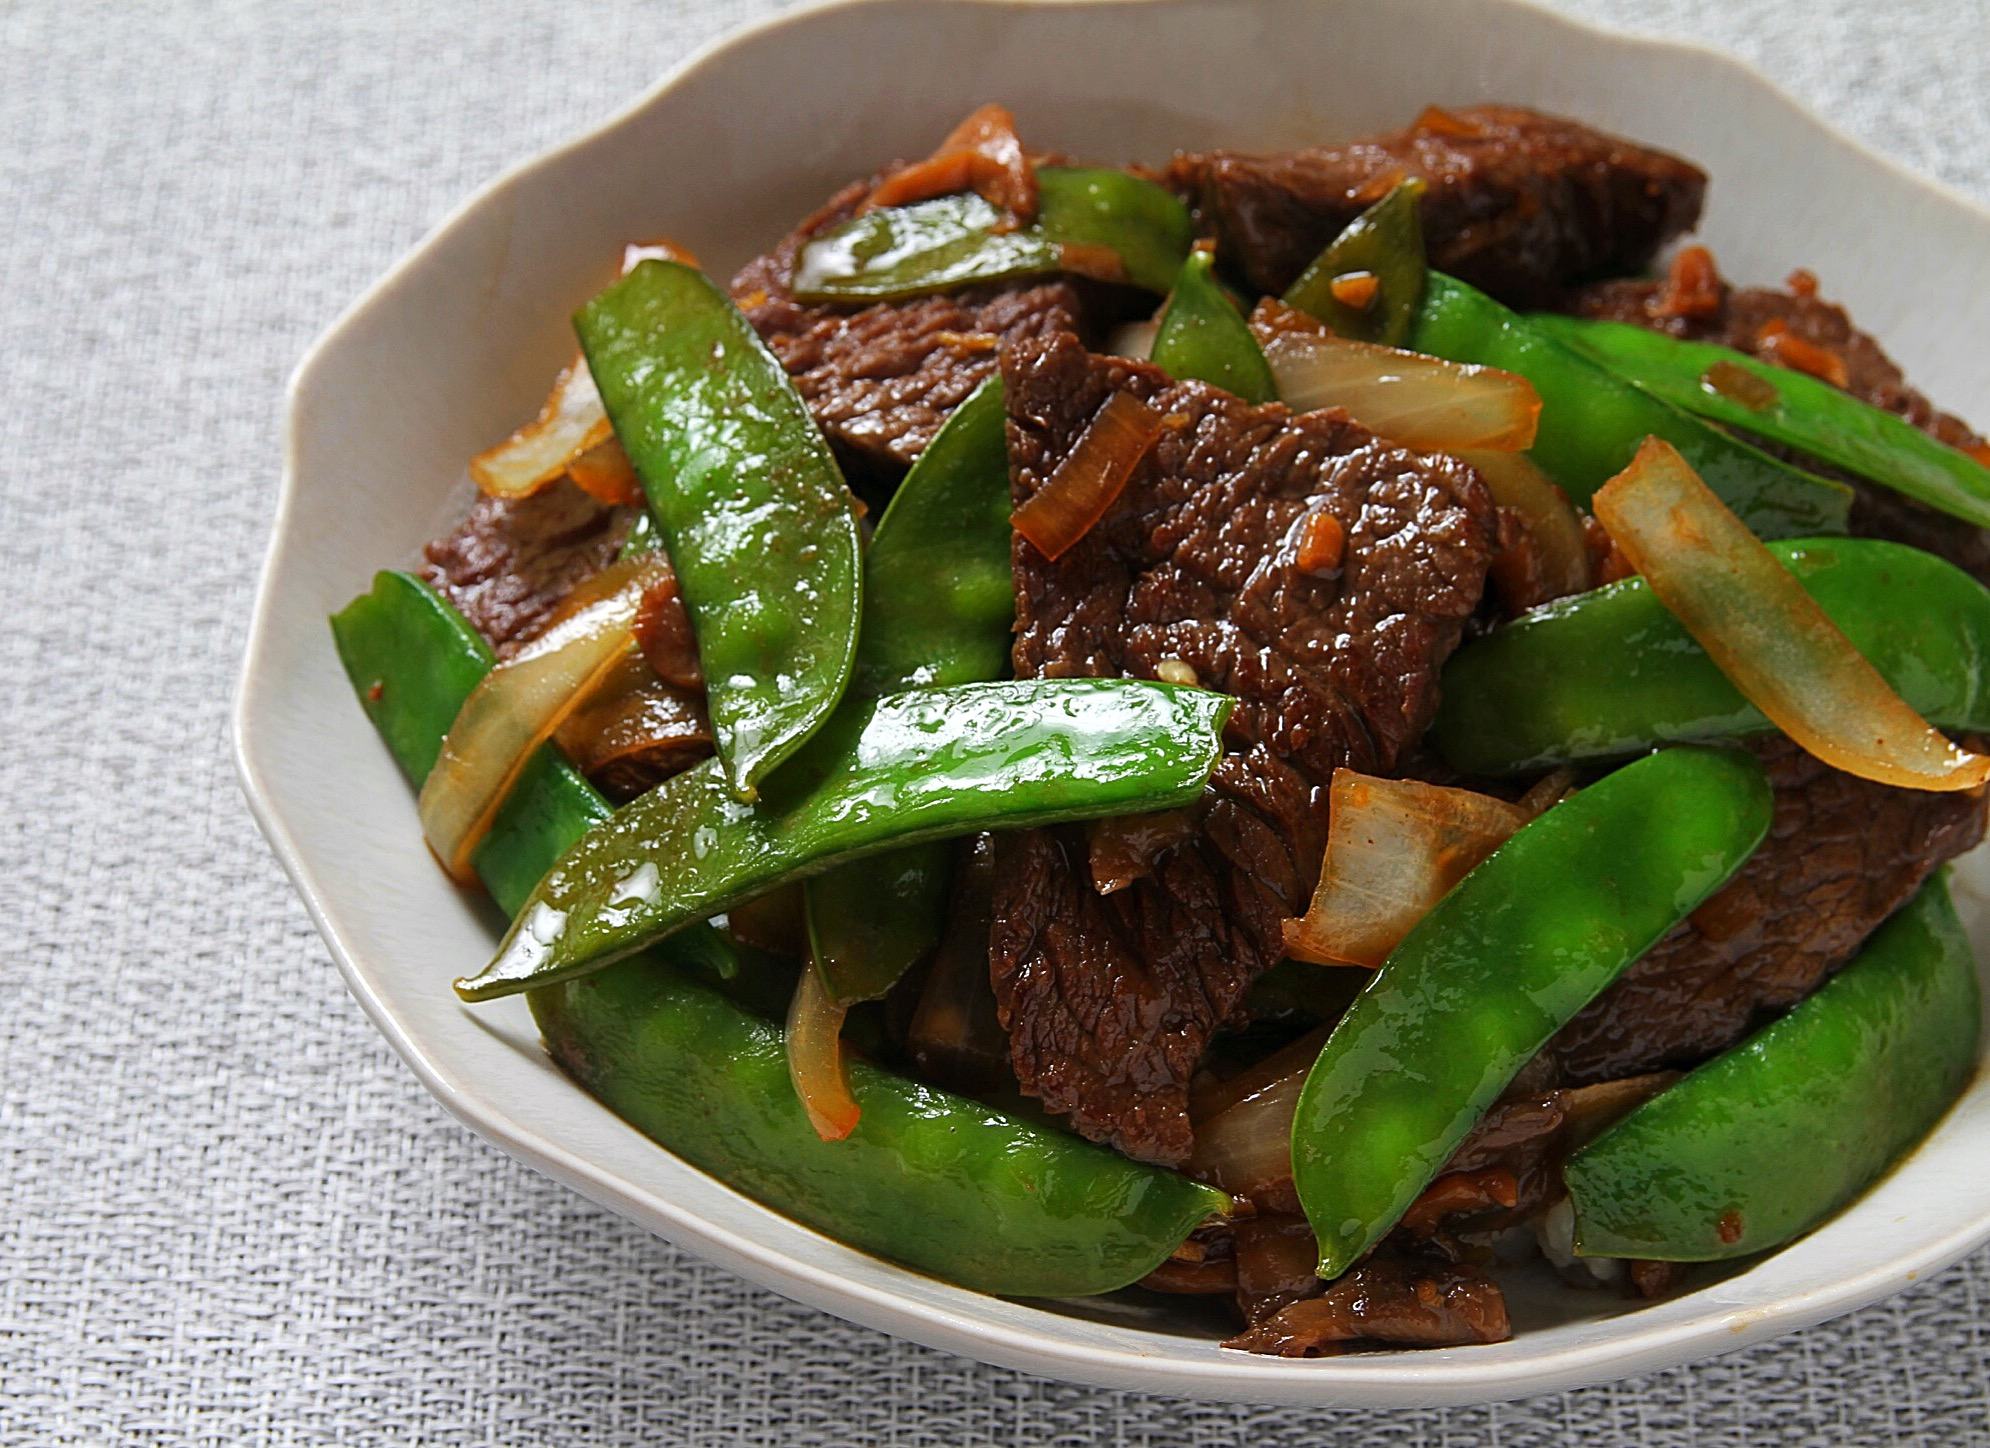 Asian flavored beef and snow pea stir fry.